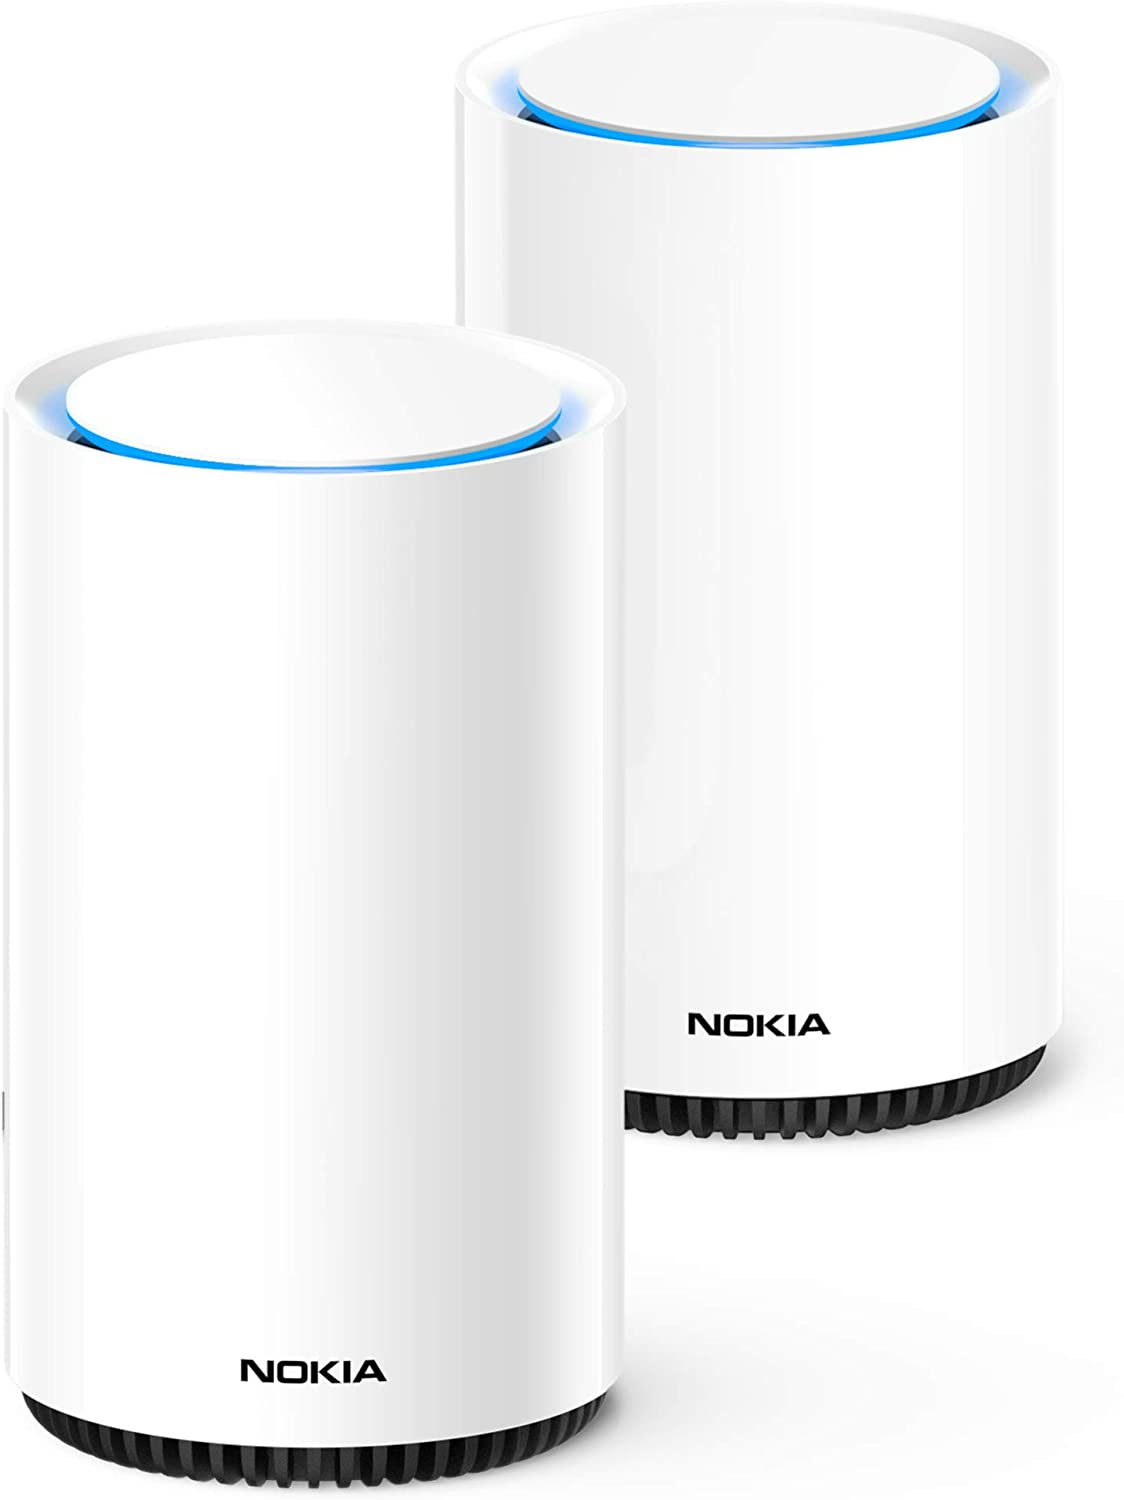 Nokia Beacon 3 Wifi Network Router System Smart Computers Accessories